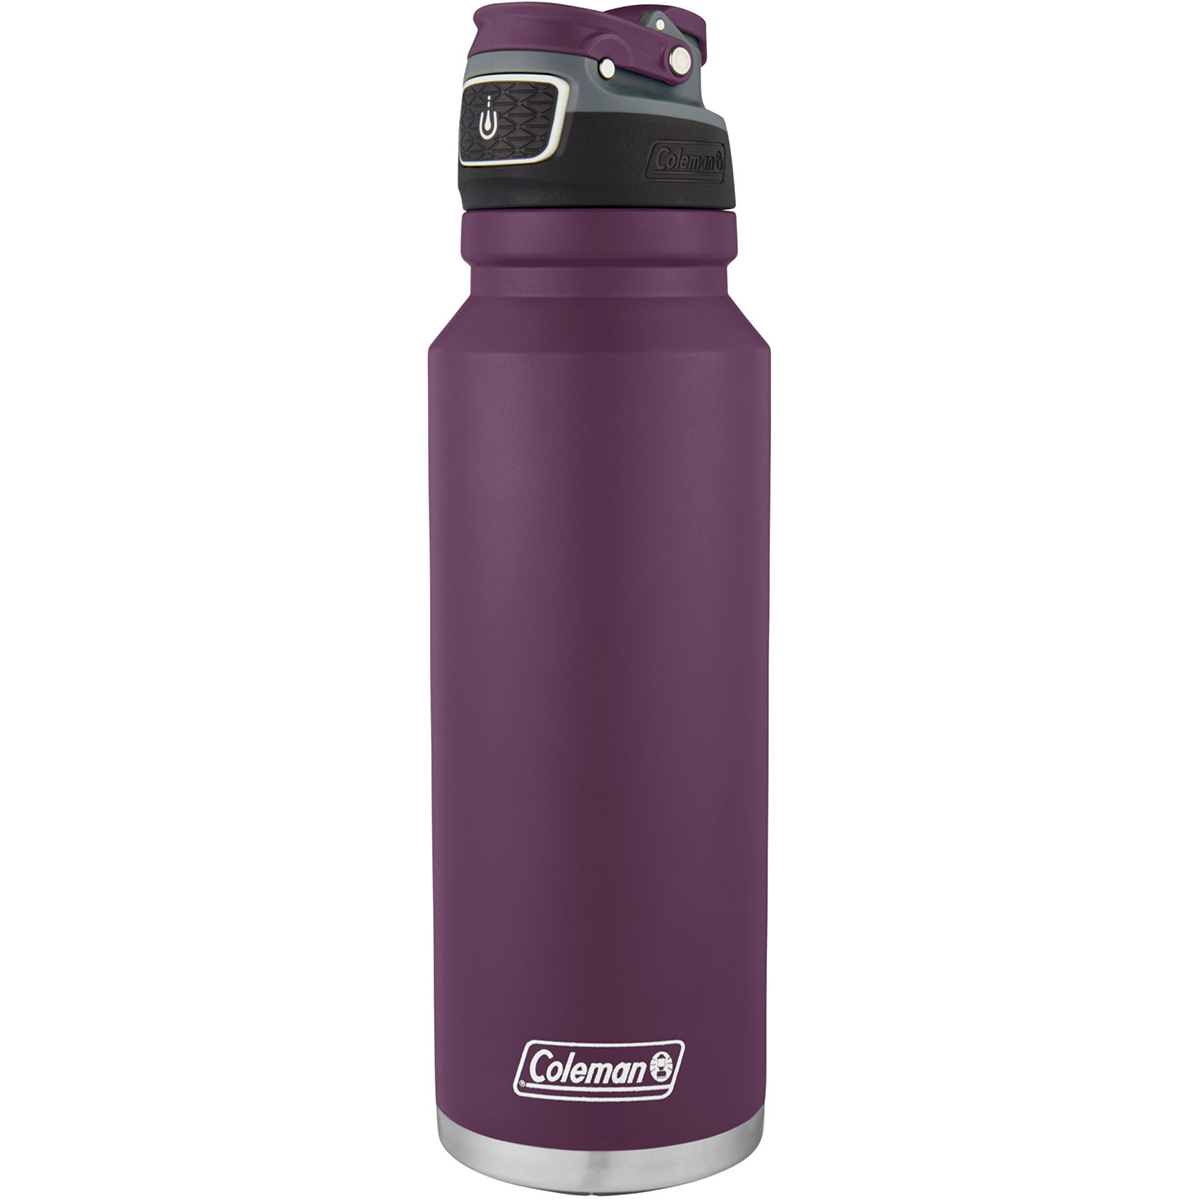 thumbnail 27 - Coleman 40 oz. Free Flow Autoseal Insulated Stainless Steel Water Bottle